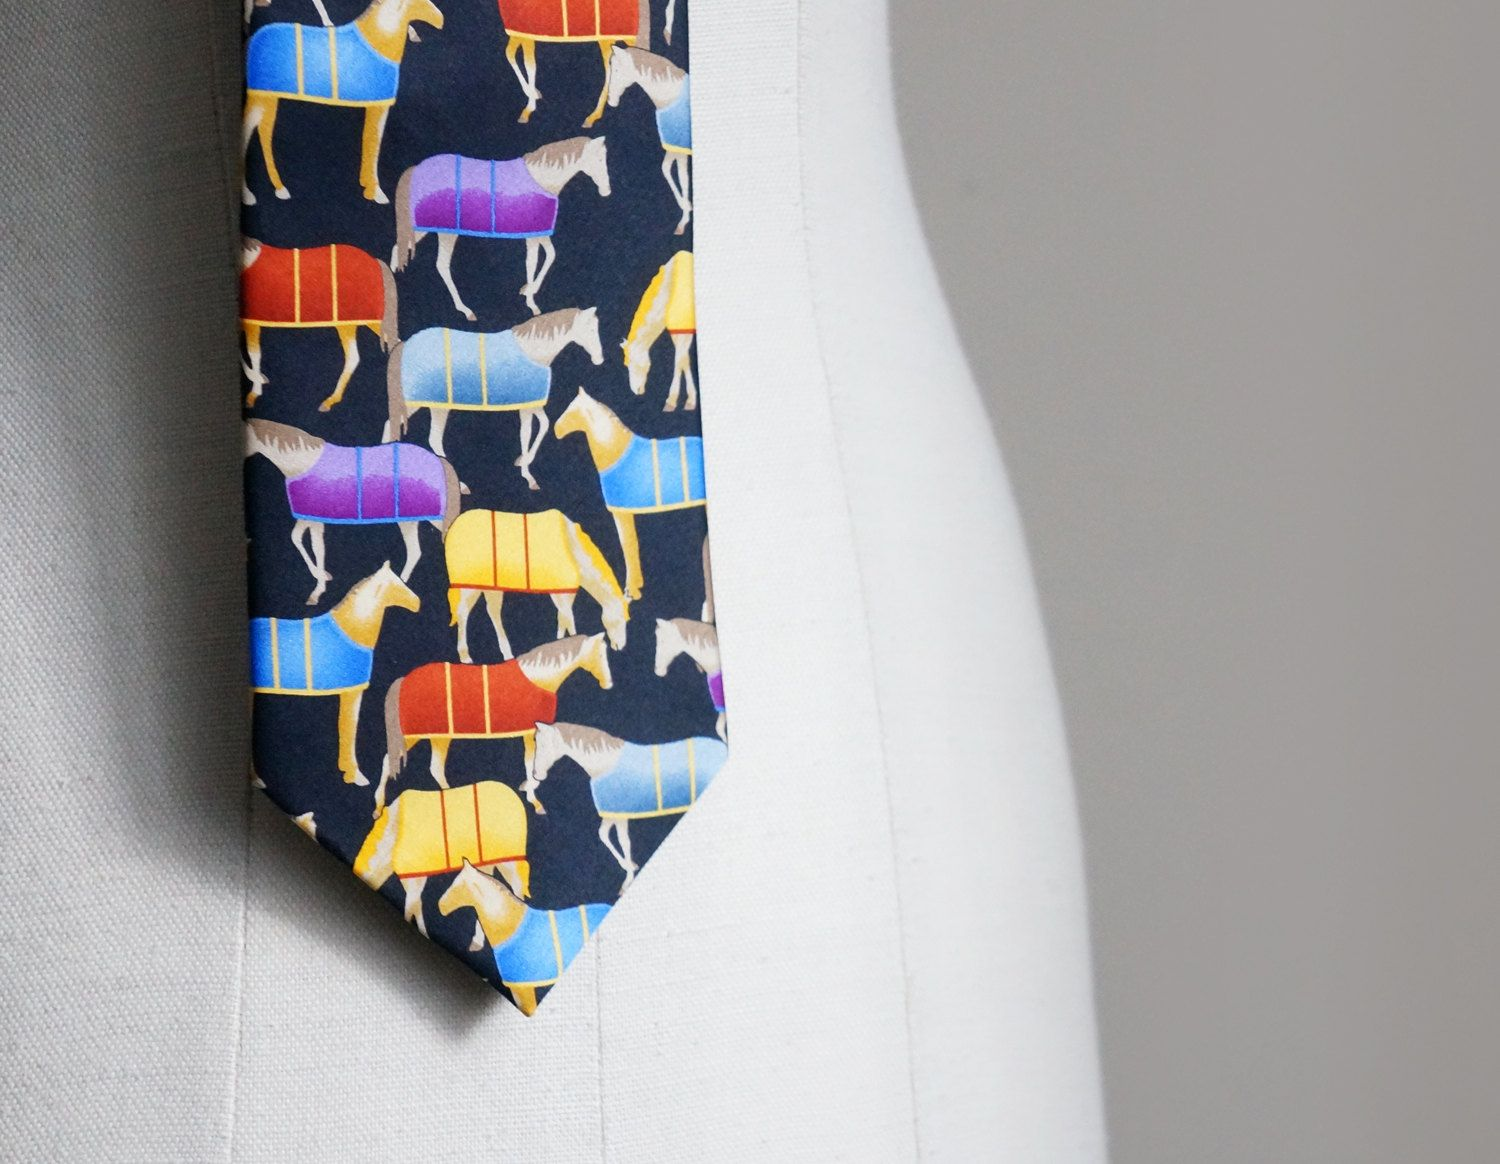 Vintage mens equestrian necktie, funny colorful tie with horses, Robin Ruth - http://bit.ly/1zB2eaq